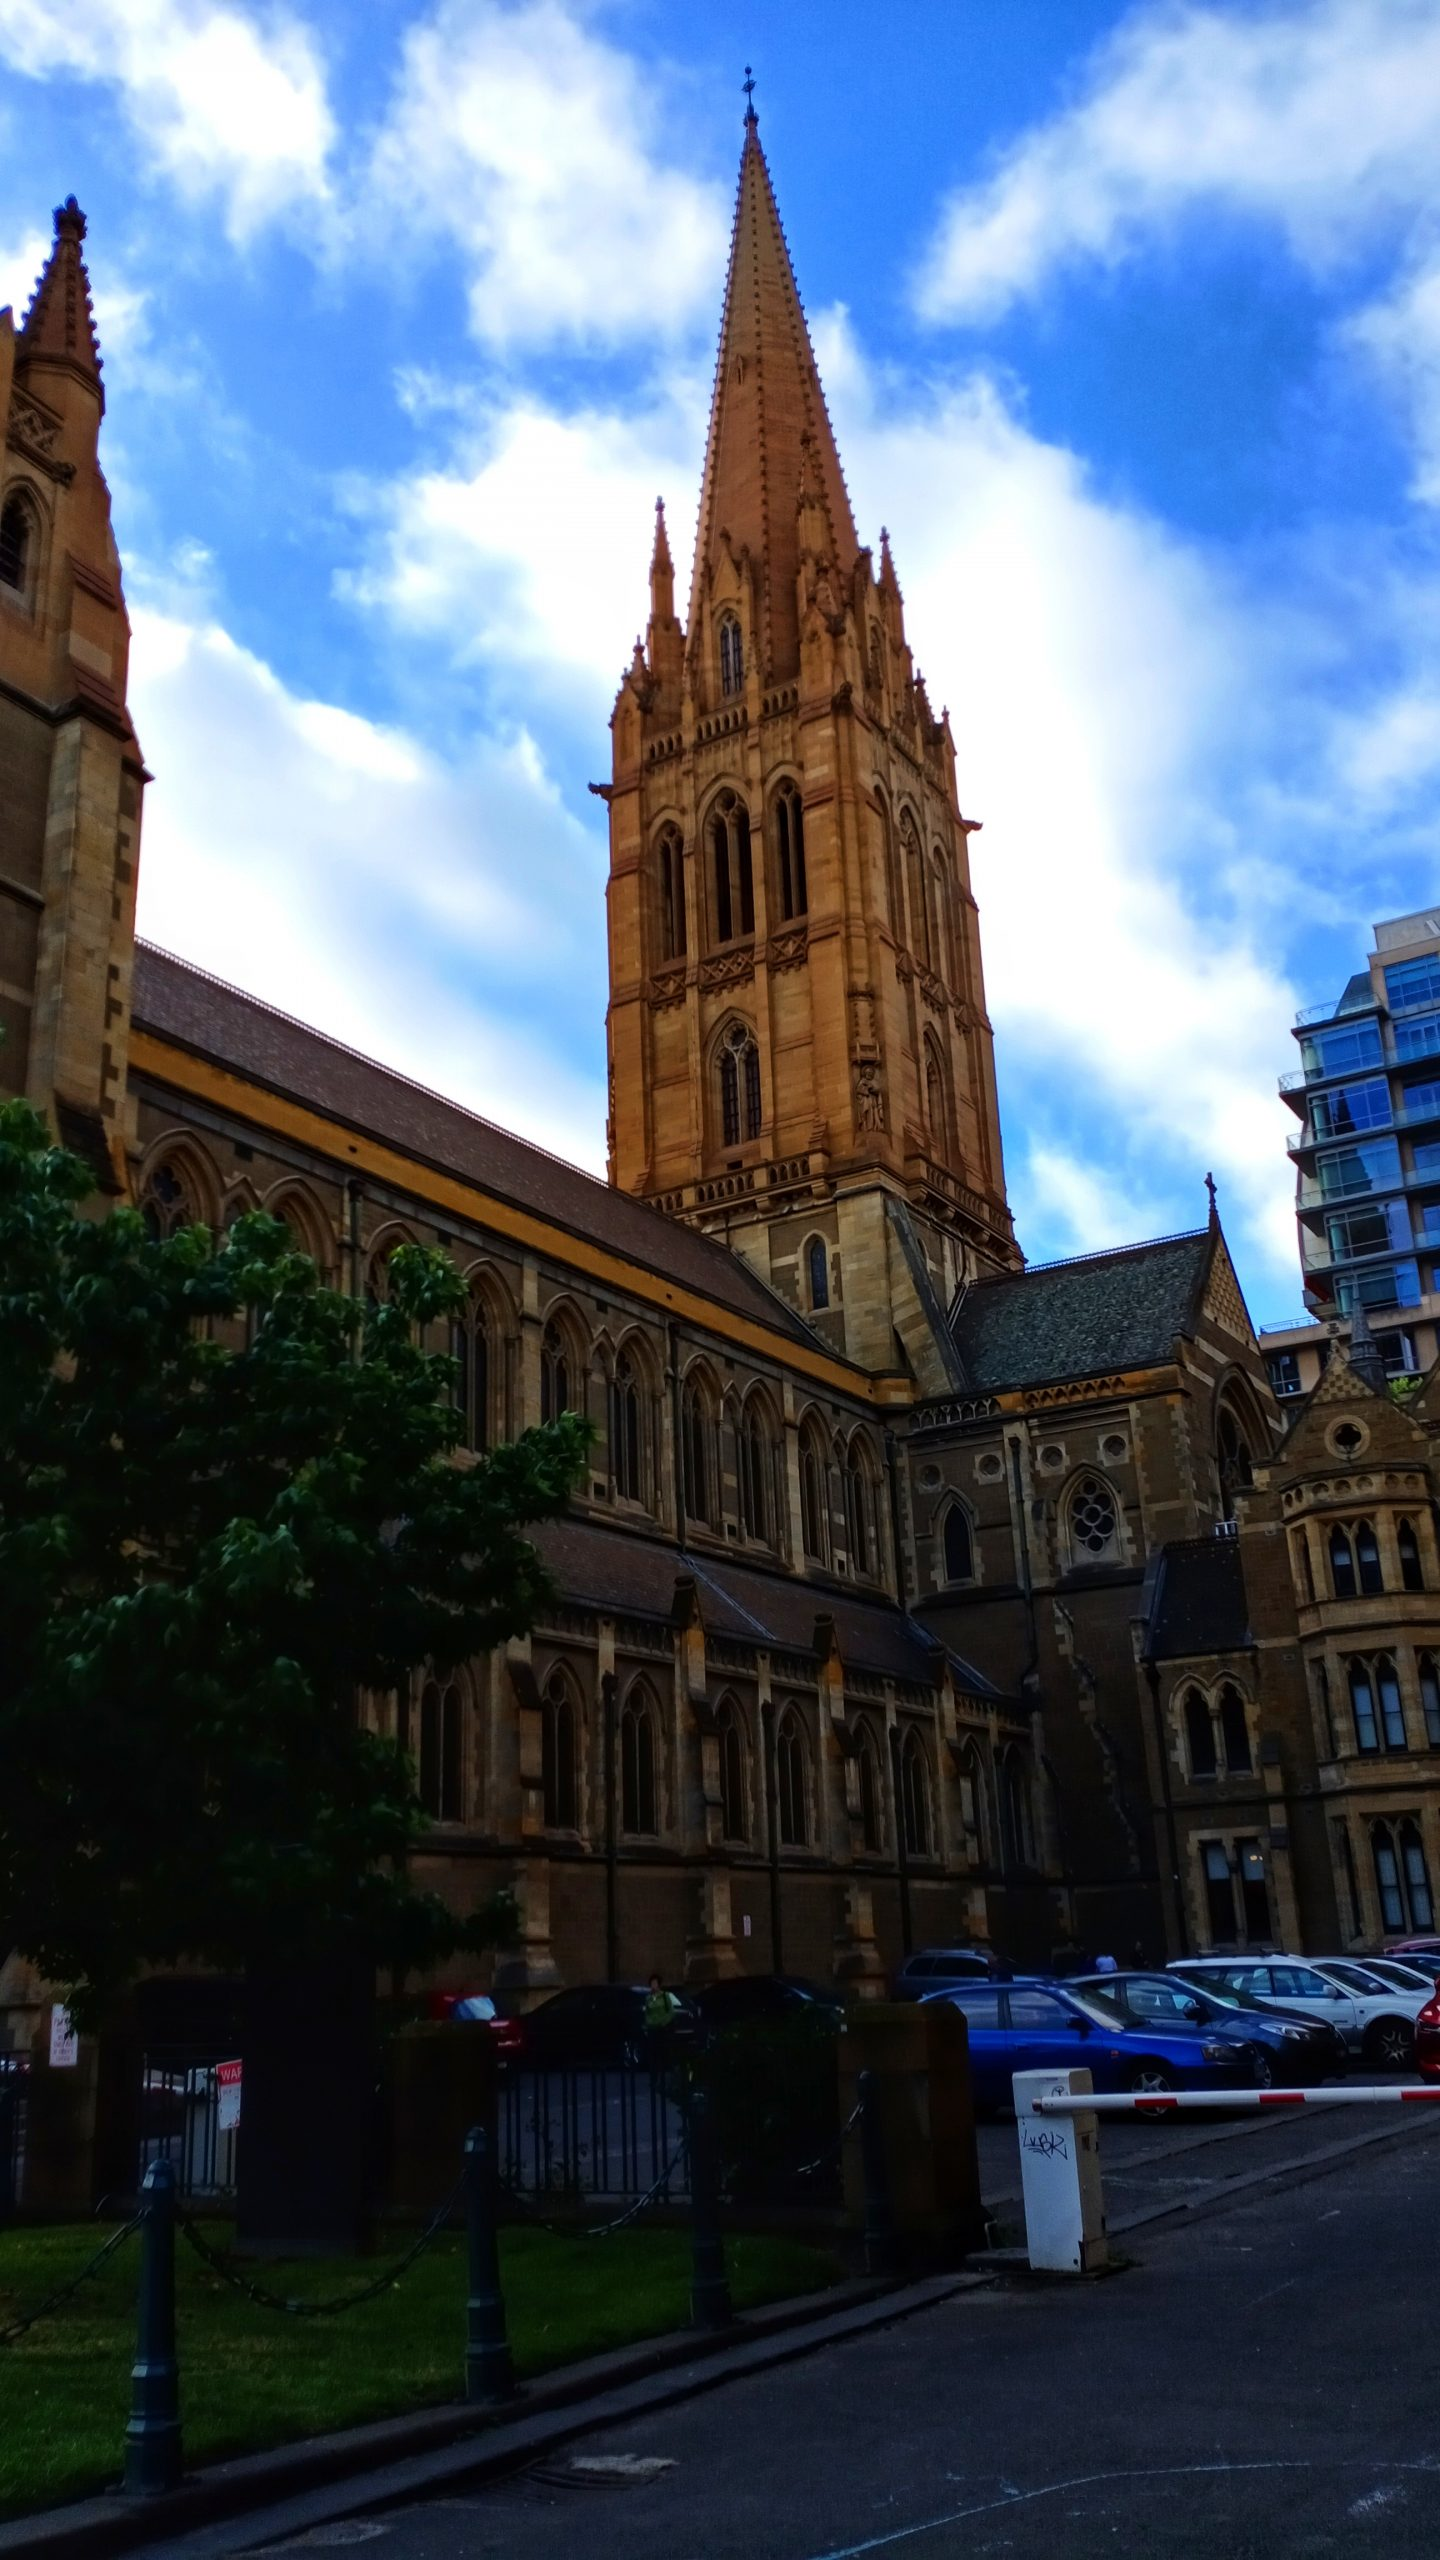 A cathedral church in Australia.